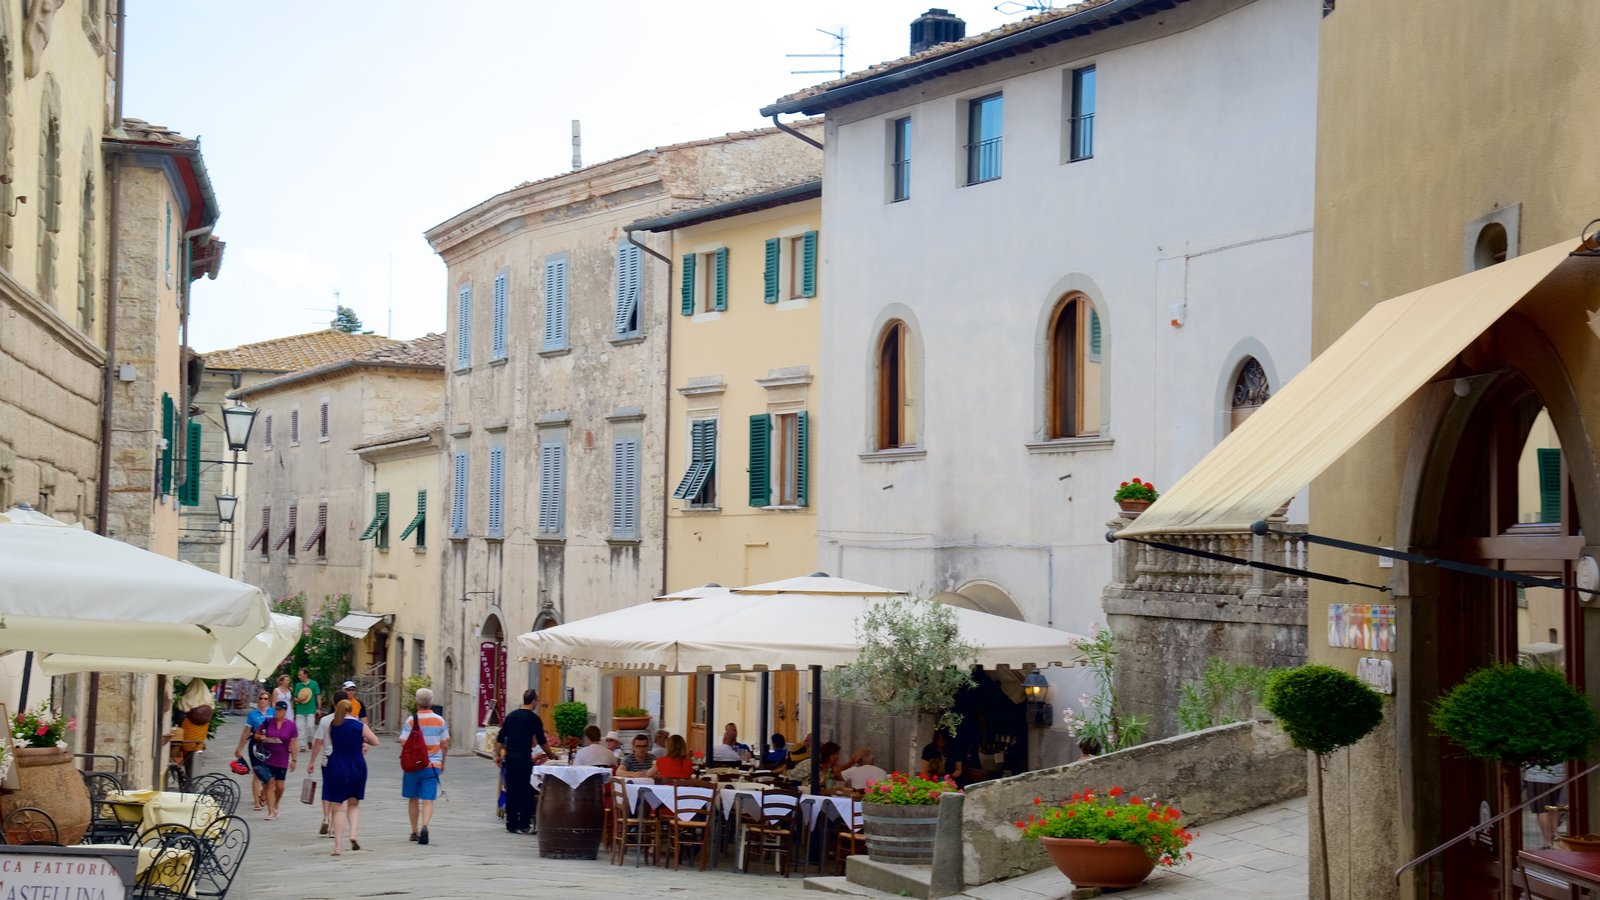 Castellina in Chianti showing a city, street scenes and heritage elements